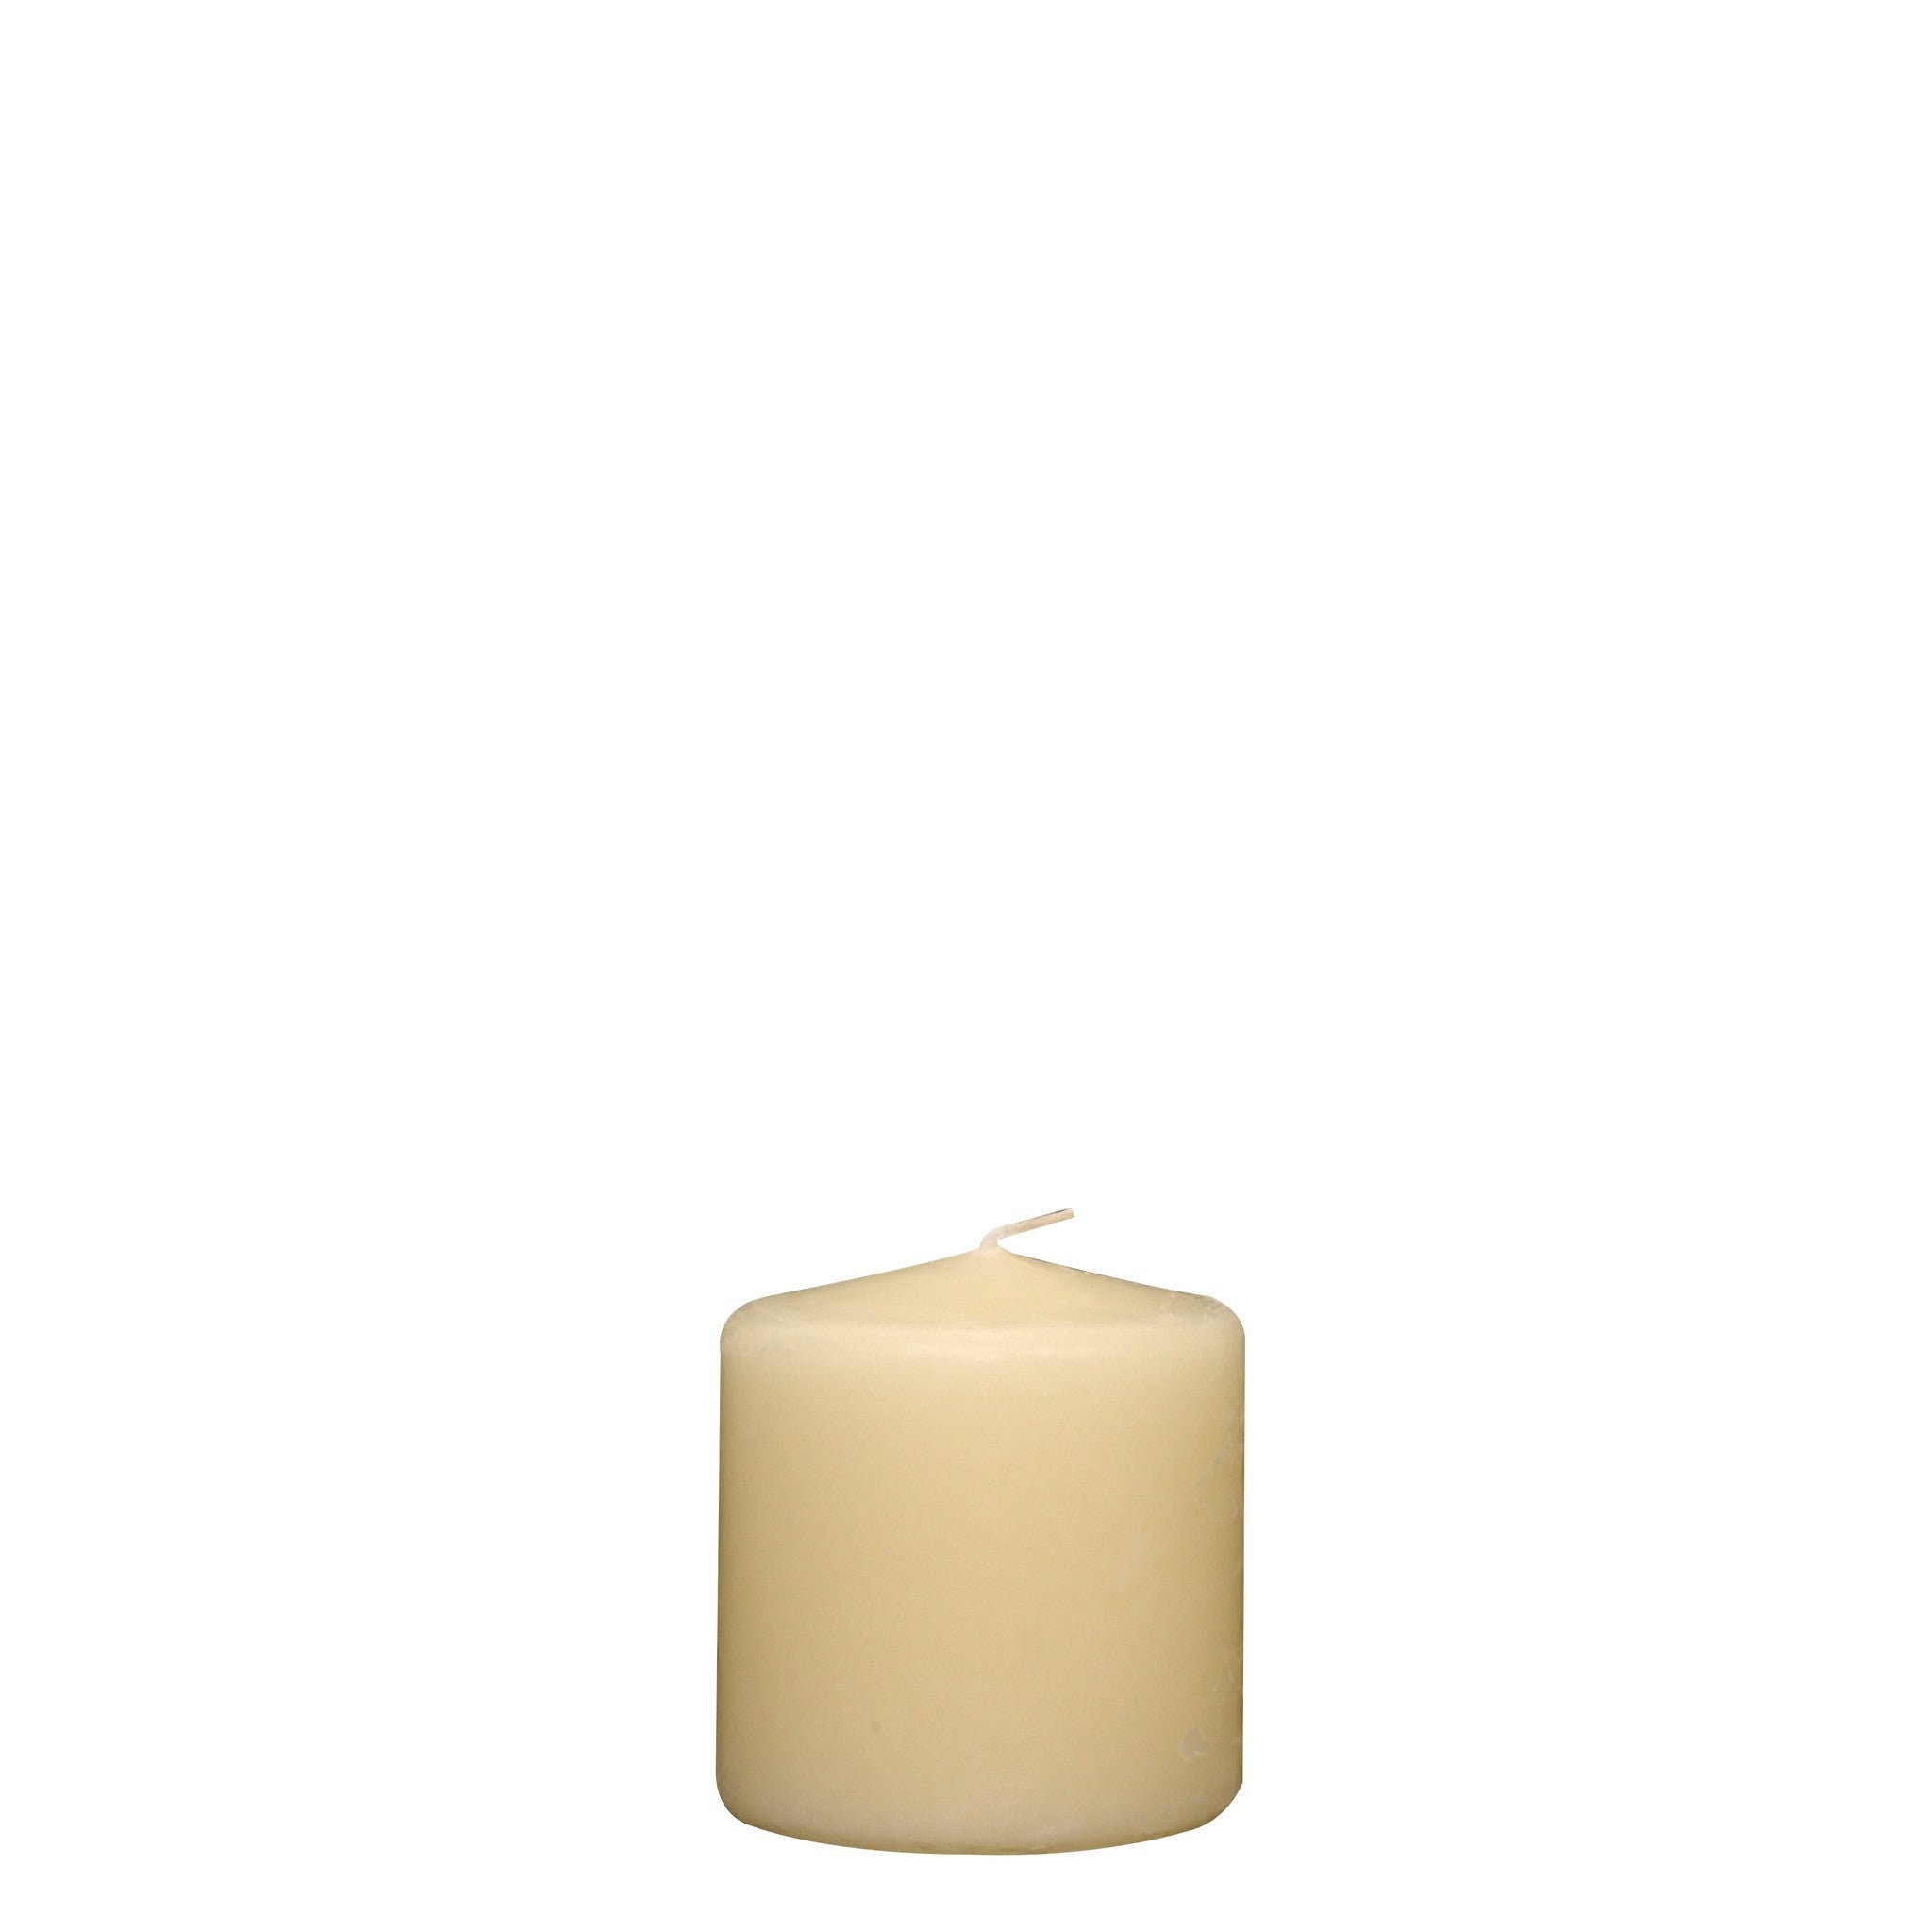 3x3 Unscented Ivory Pillar Candle Candles Candlemart.com $ 2.29